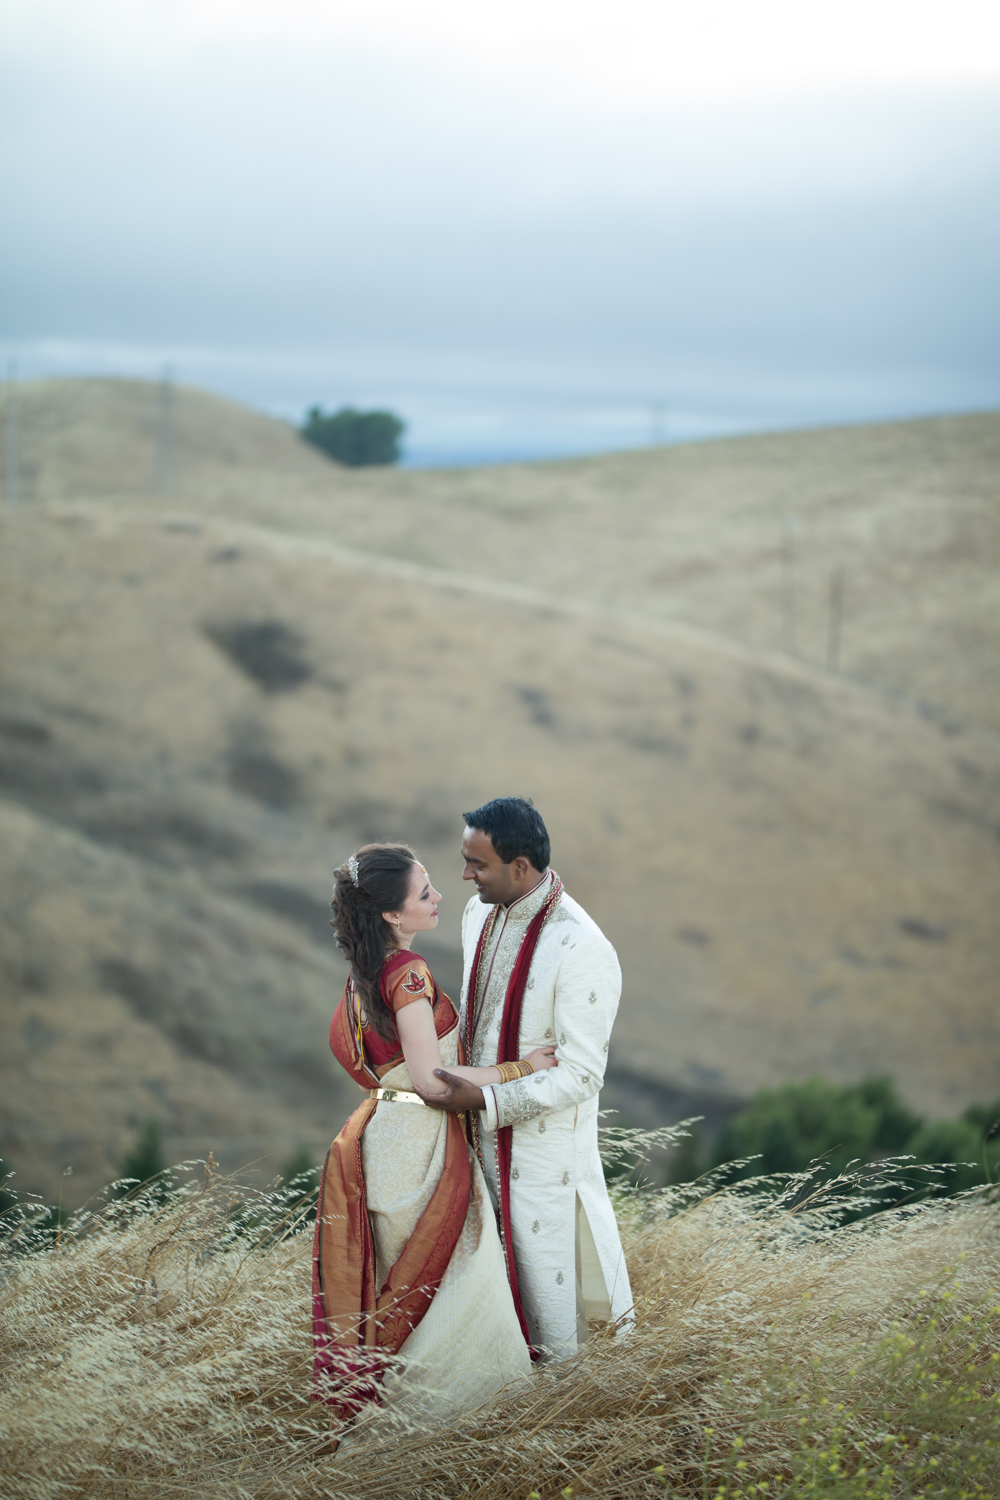 Vikas & Adriana Portrait at Nella Terra Cellars